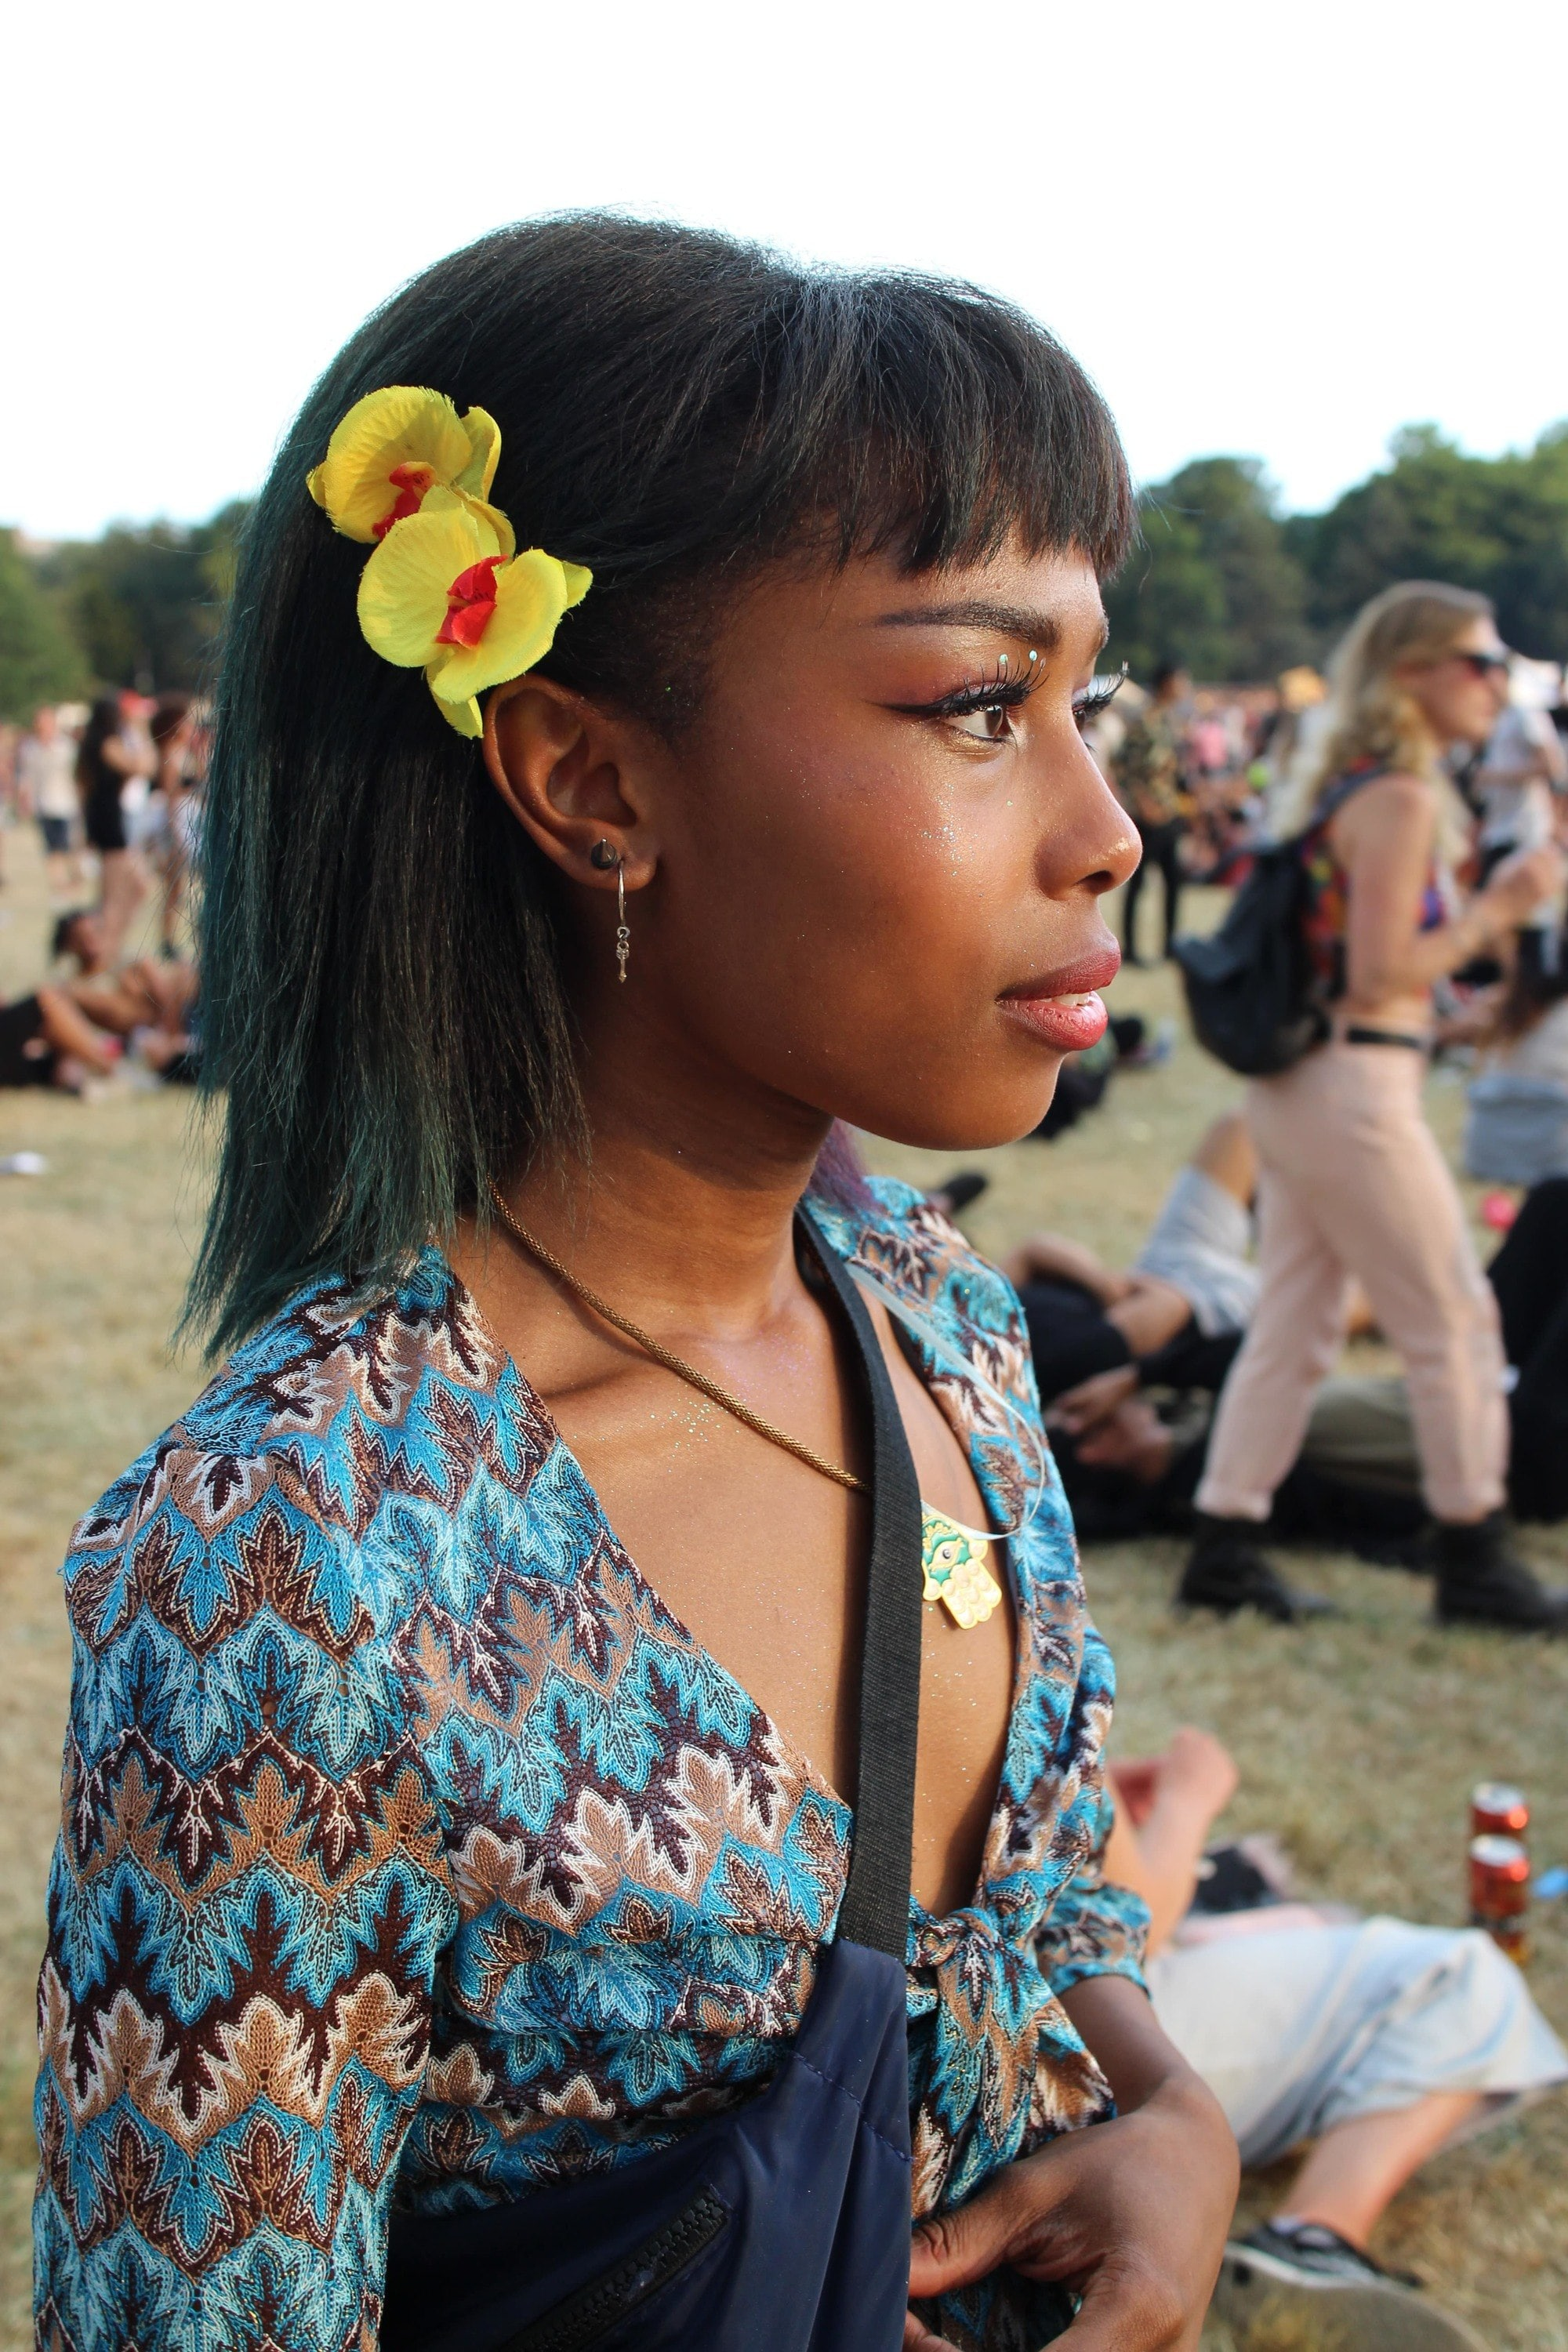 Floral festival hair: side view of black woman with straight dark brown hair at festival with yellow sunflower hairclips positioned on the side of her just behind her fringe. Girl is wearing a blue patterned top and side bag.